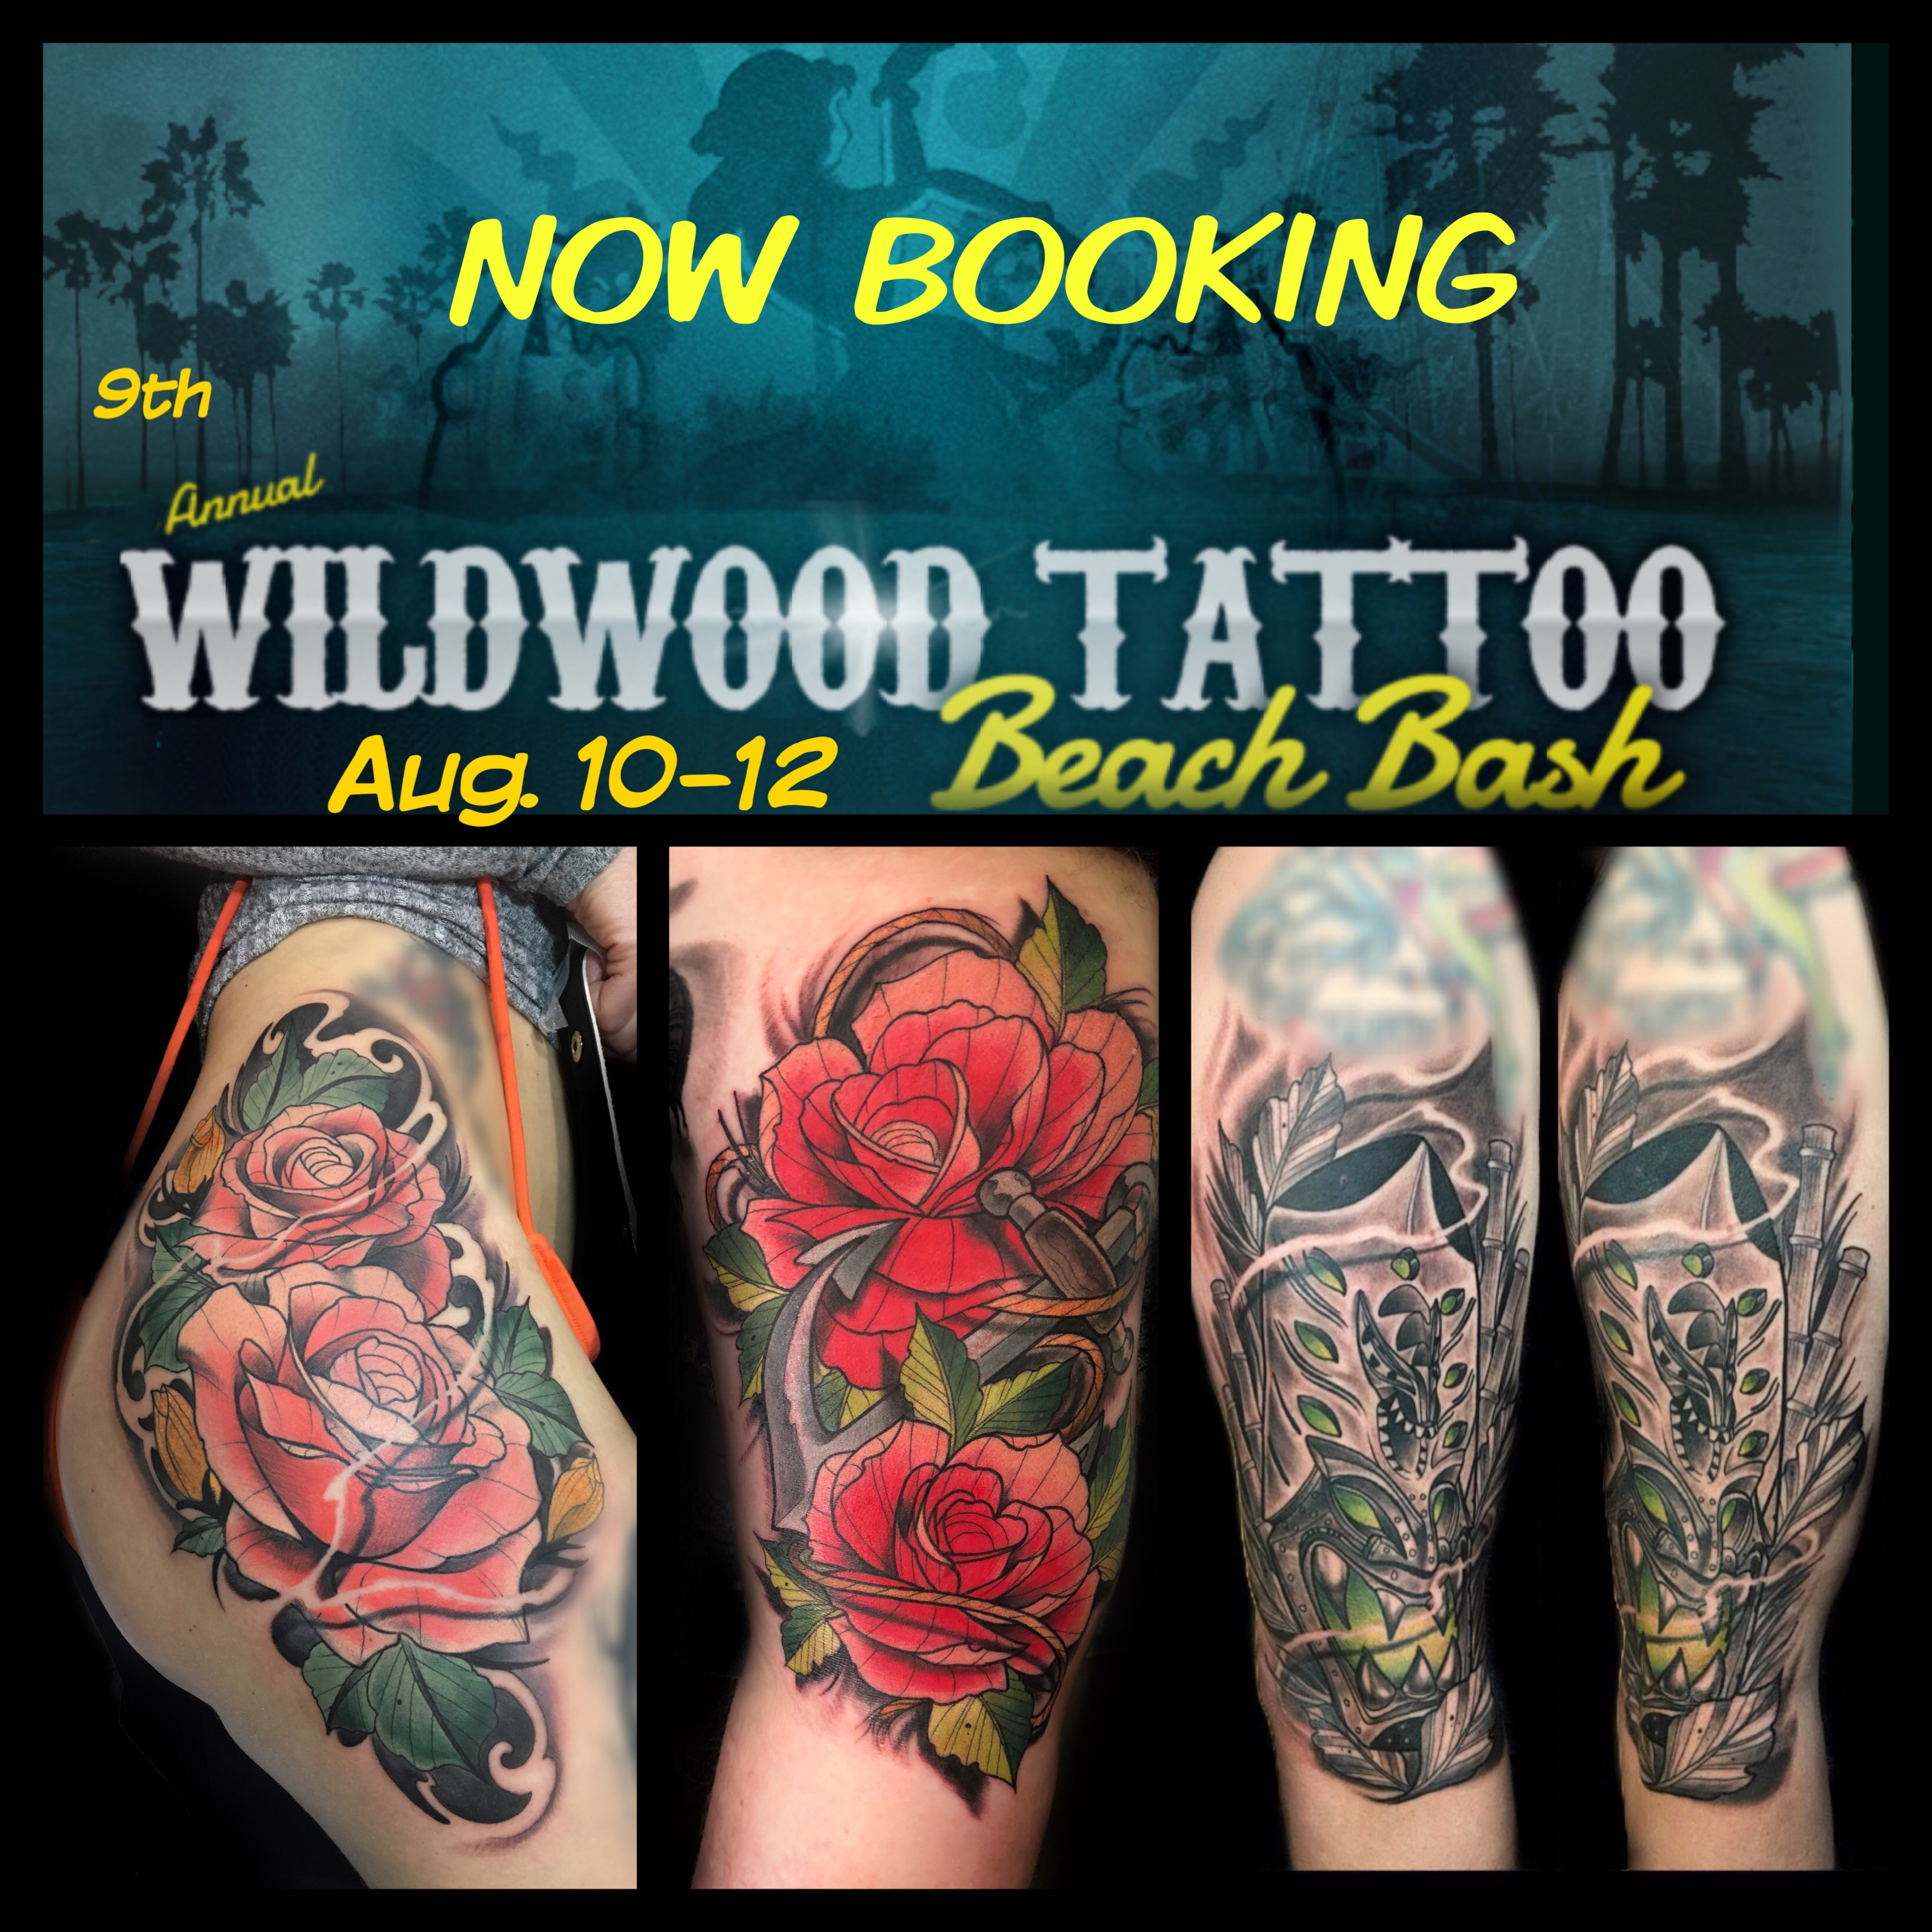 The 9th Annual Wildwood Tattoo Beach Bash